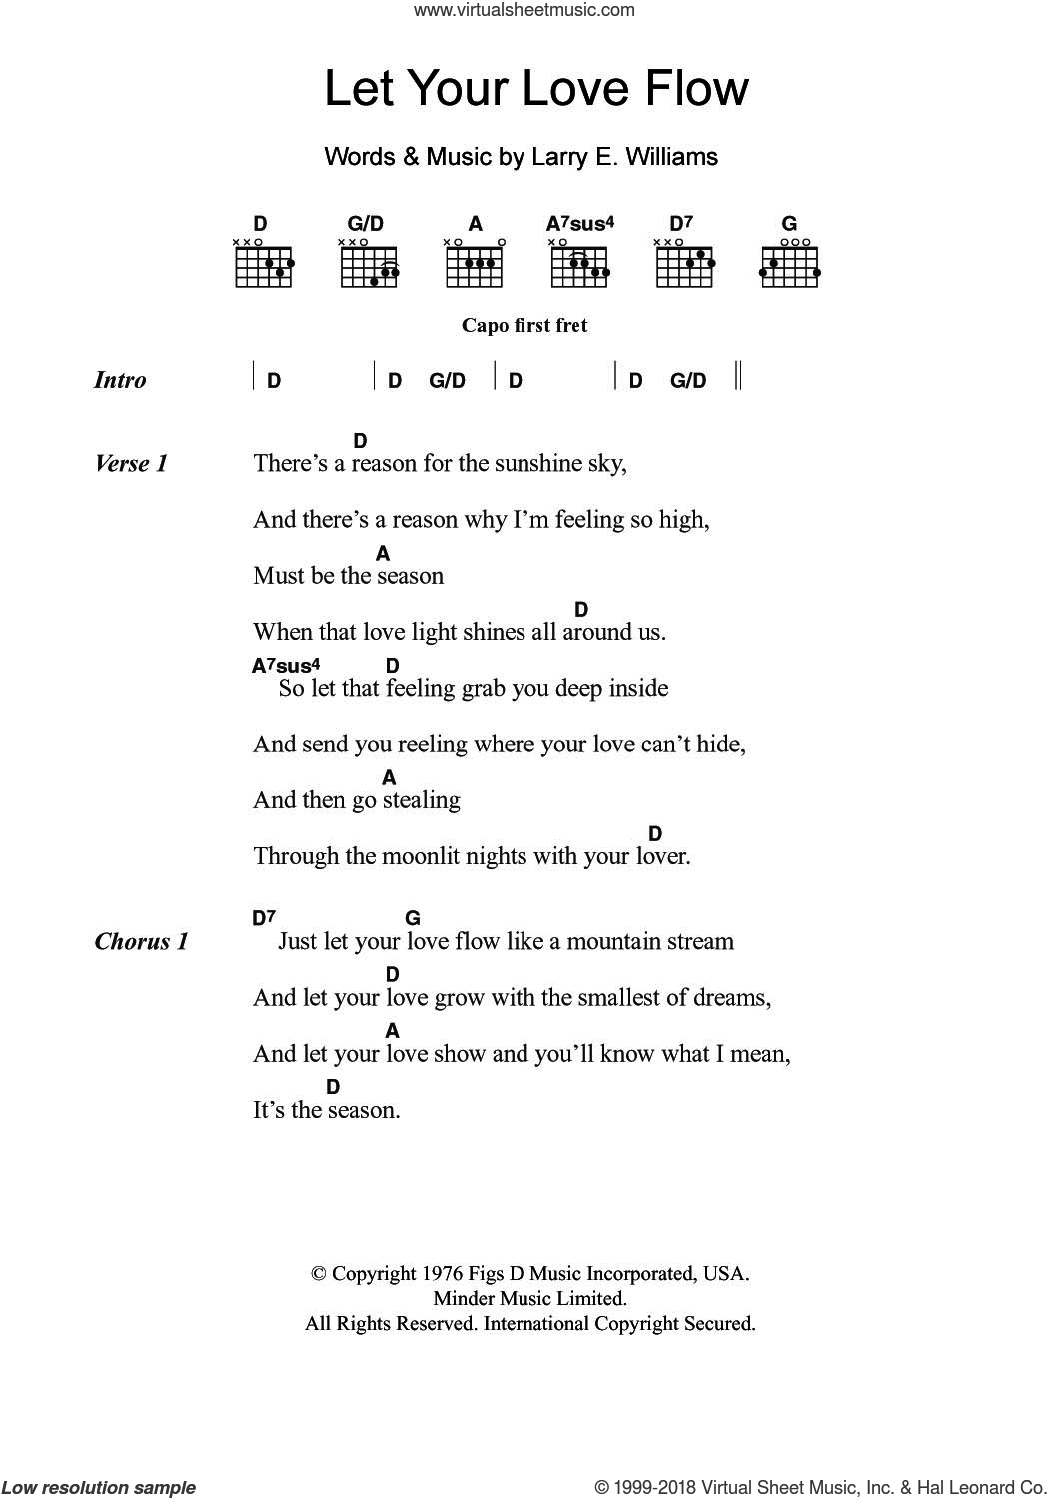 Let Your Love Flow sheet music for guitar (chords) by The Bellamy Brothers and Larry E. Williams, intermediate skill level